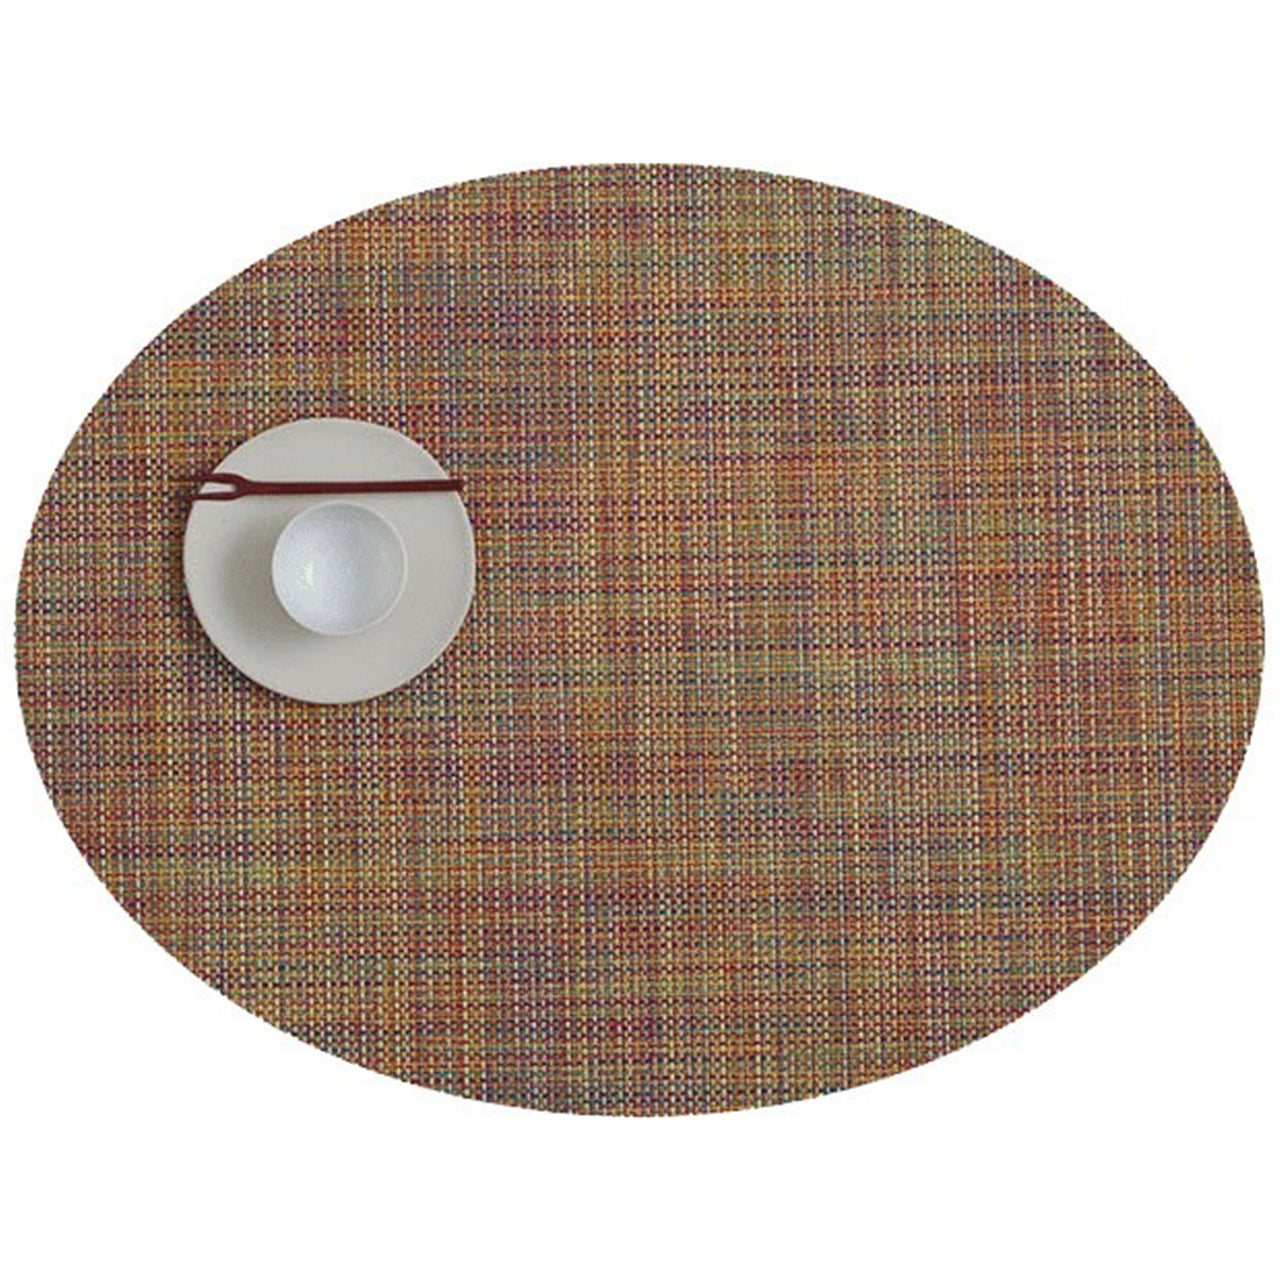 Mini Basketweave Round Placemats: Oval + Confetti